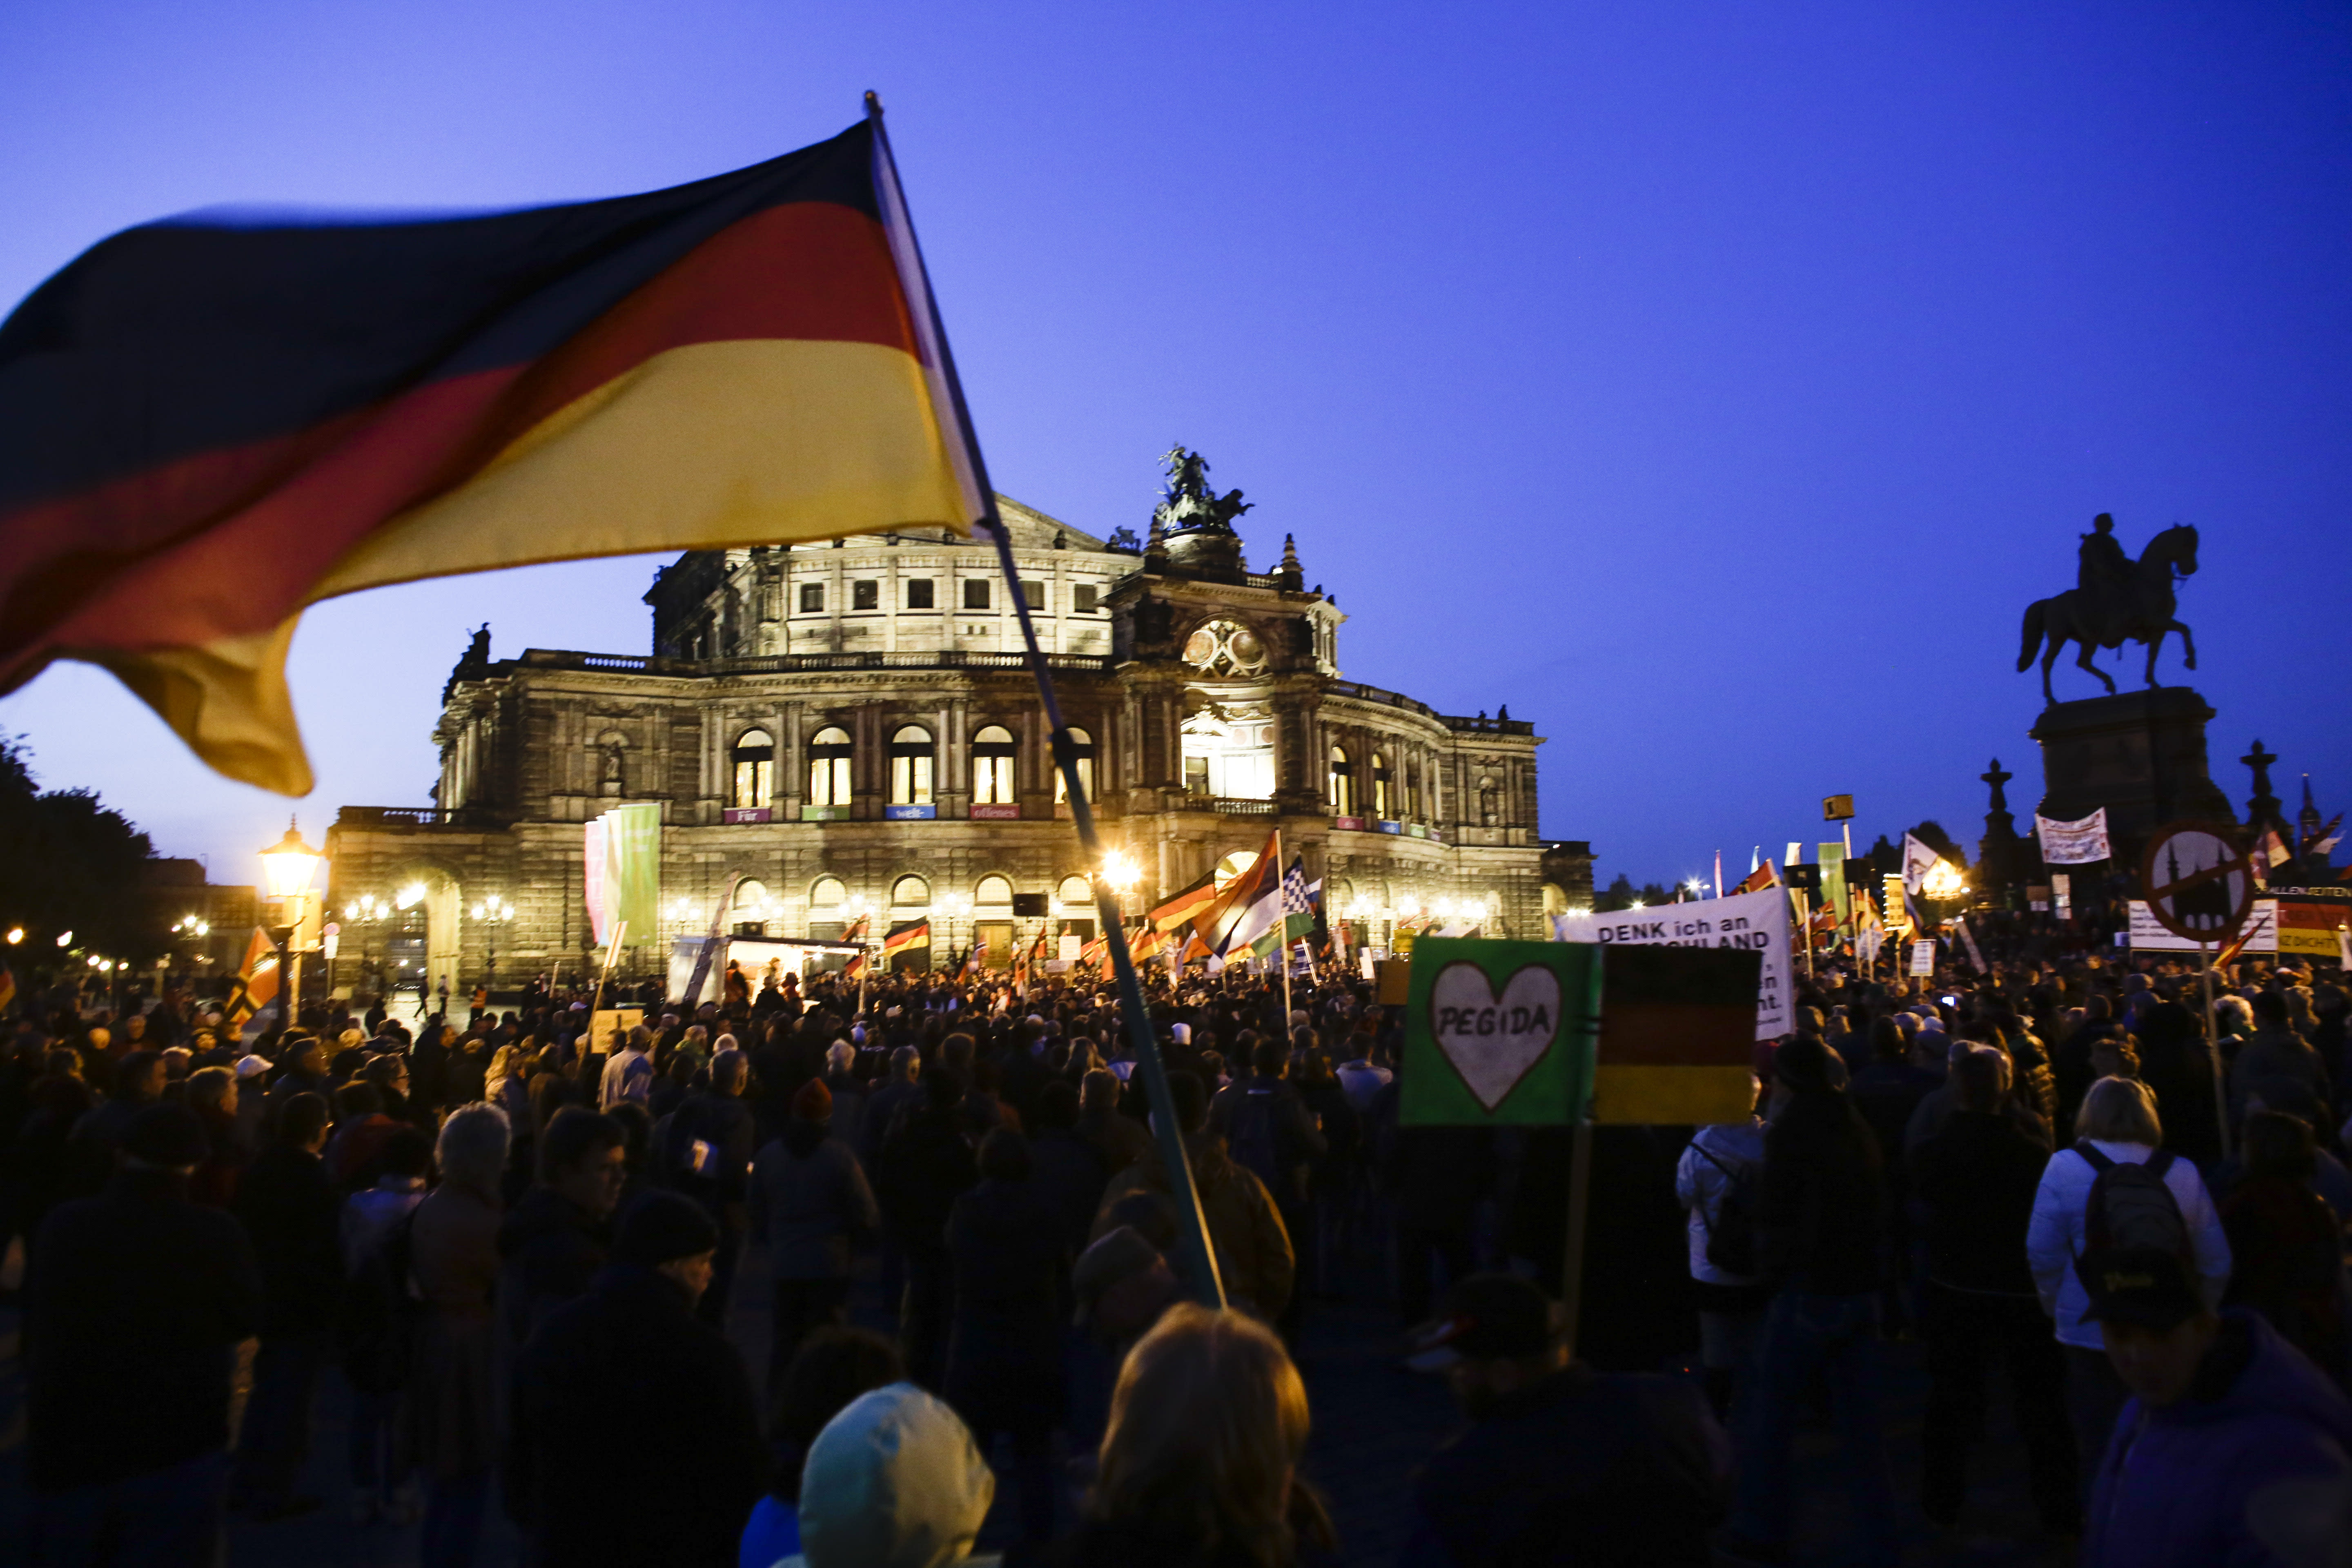 Thousands rally at German protest against refugees, Islam